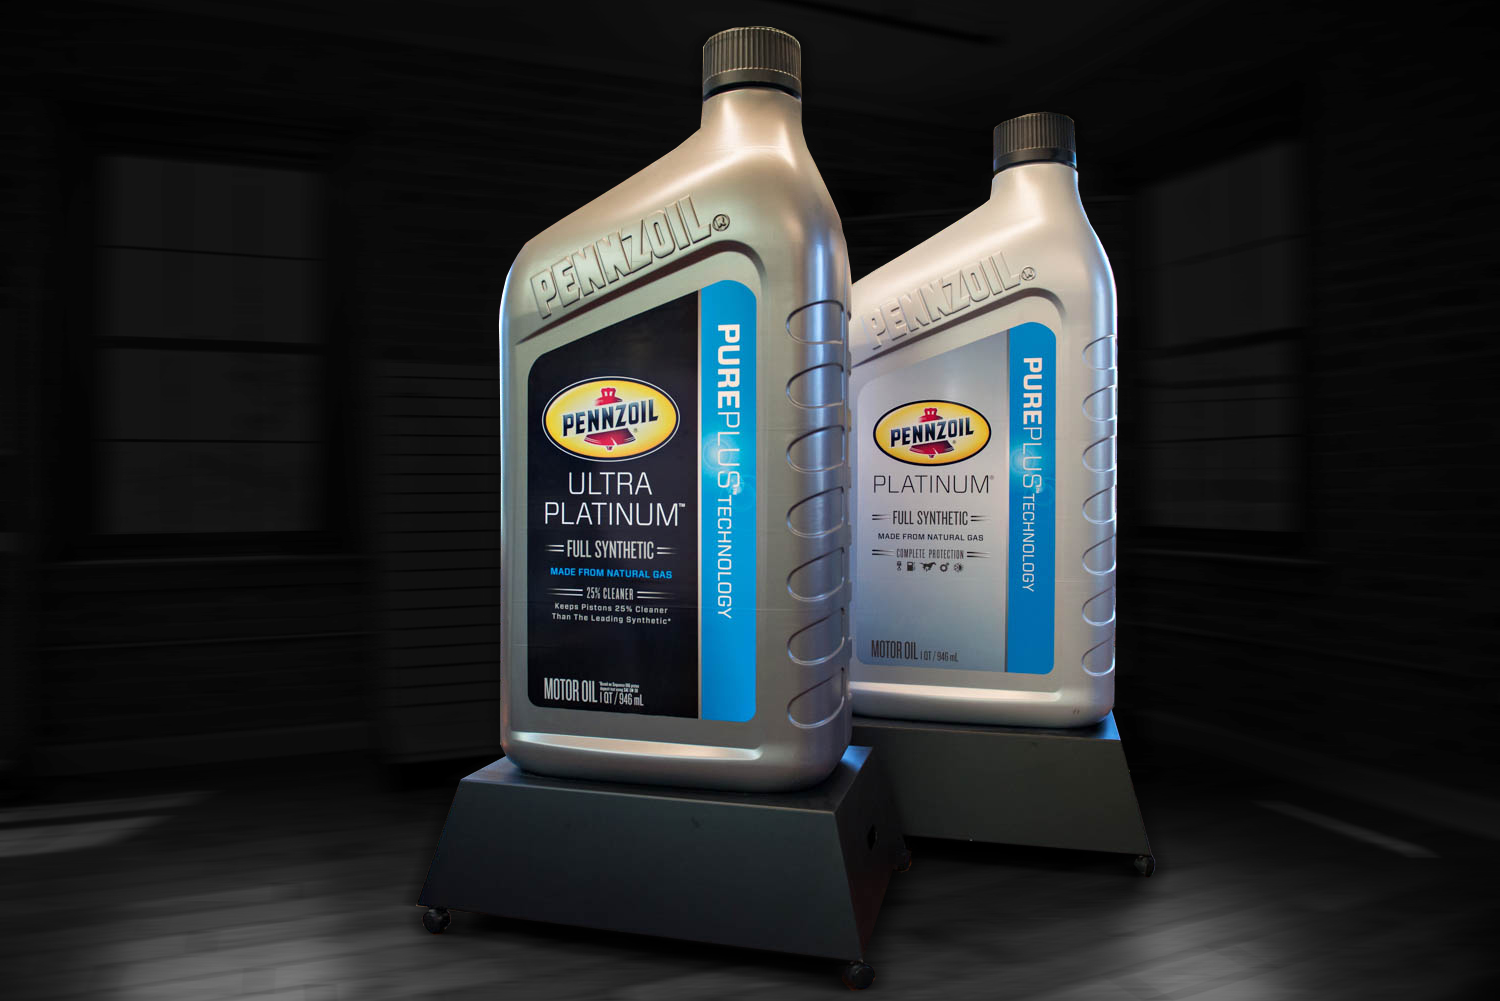 Displays for Pennzoil